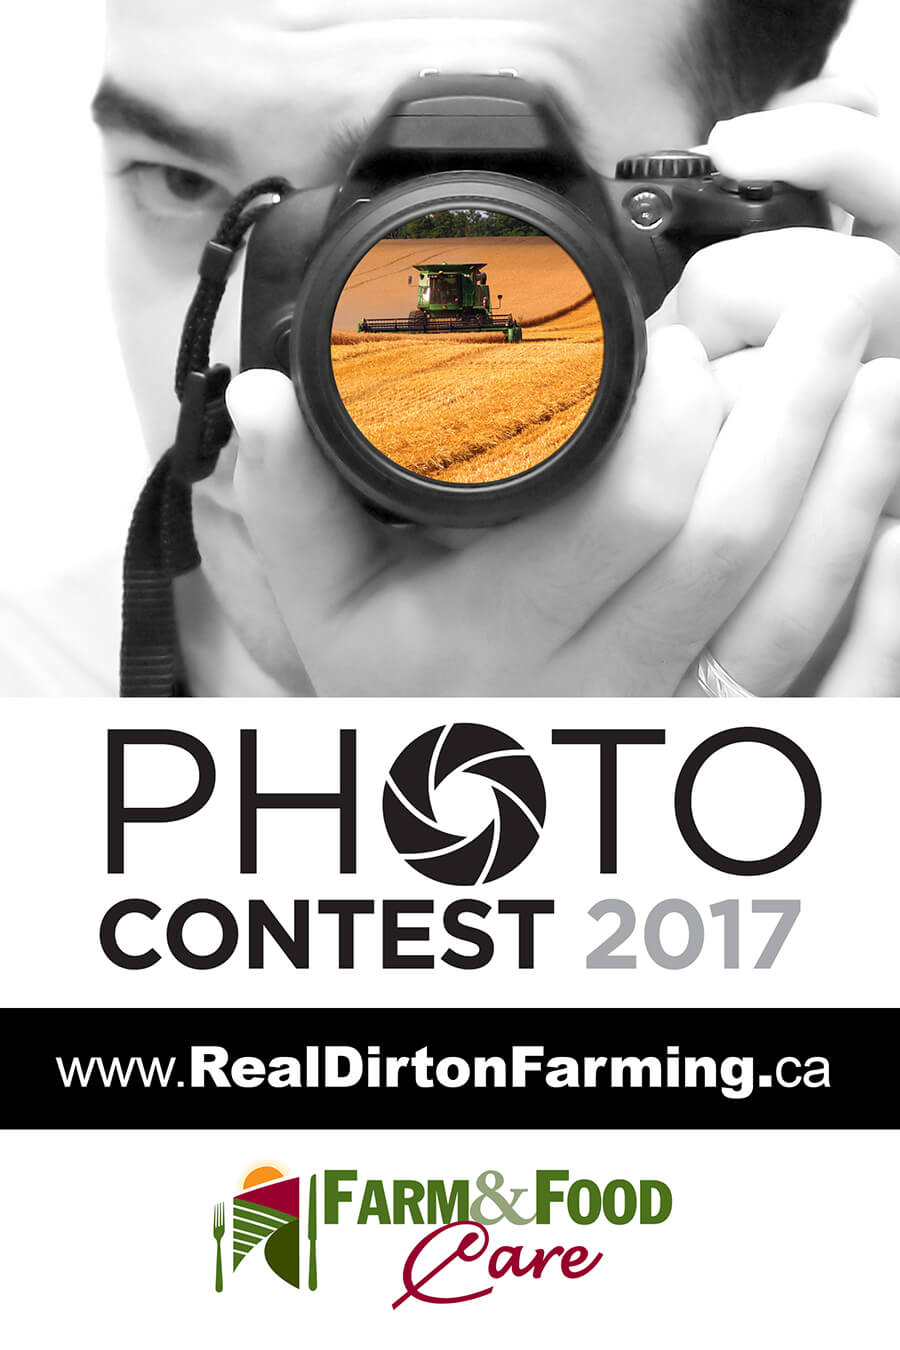 Real Dirt on Farming Photo Contest 2017